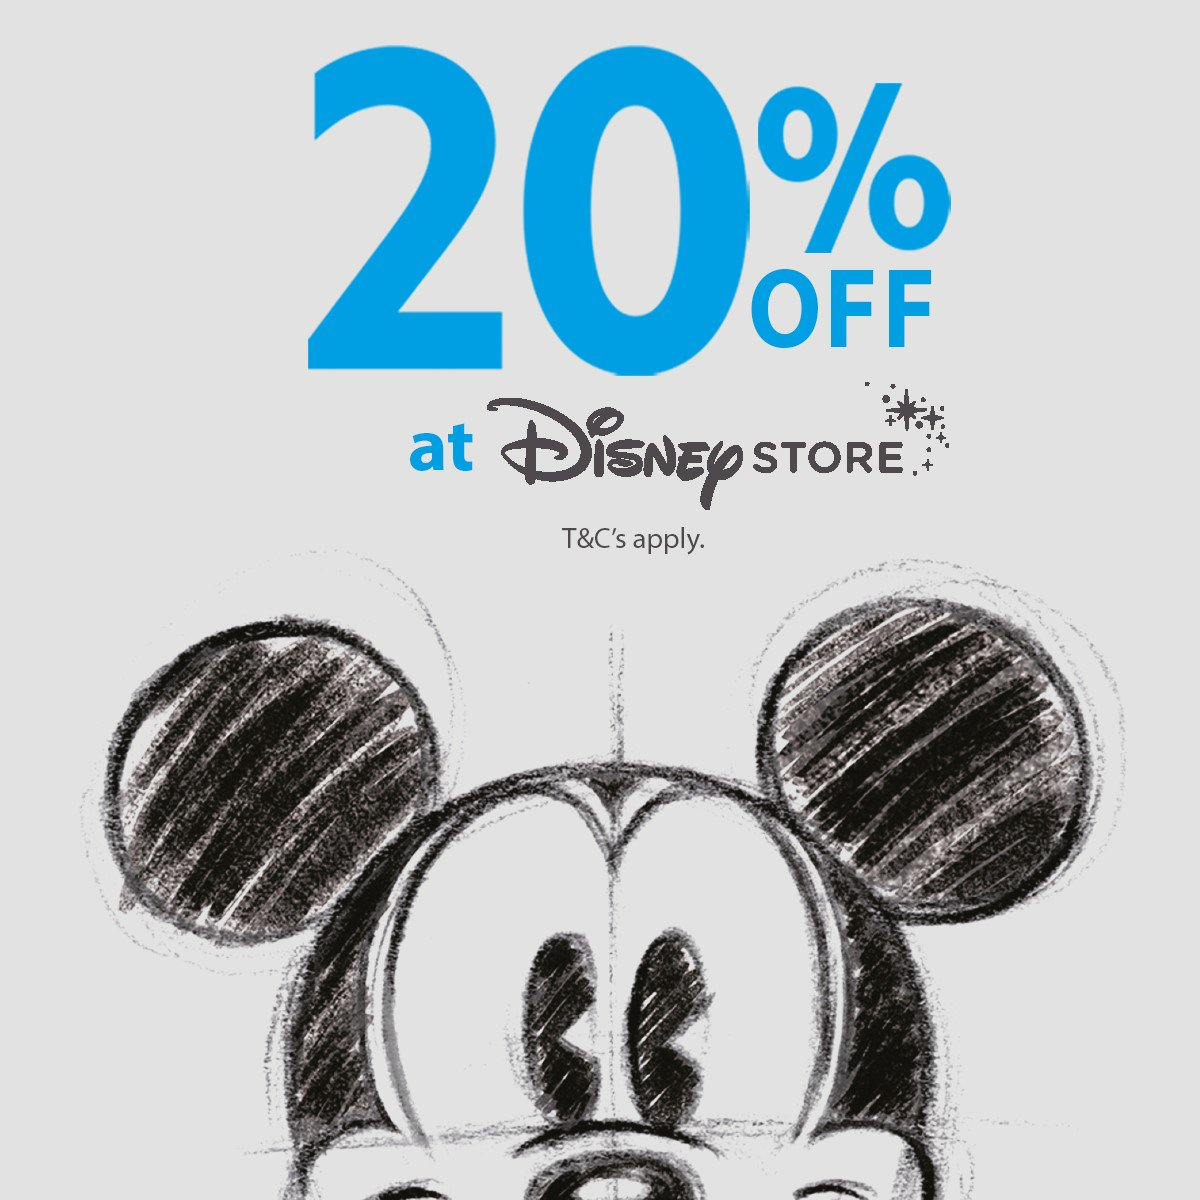 White Rose On Twitter Ready Set Shop Disney Store Are